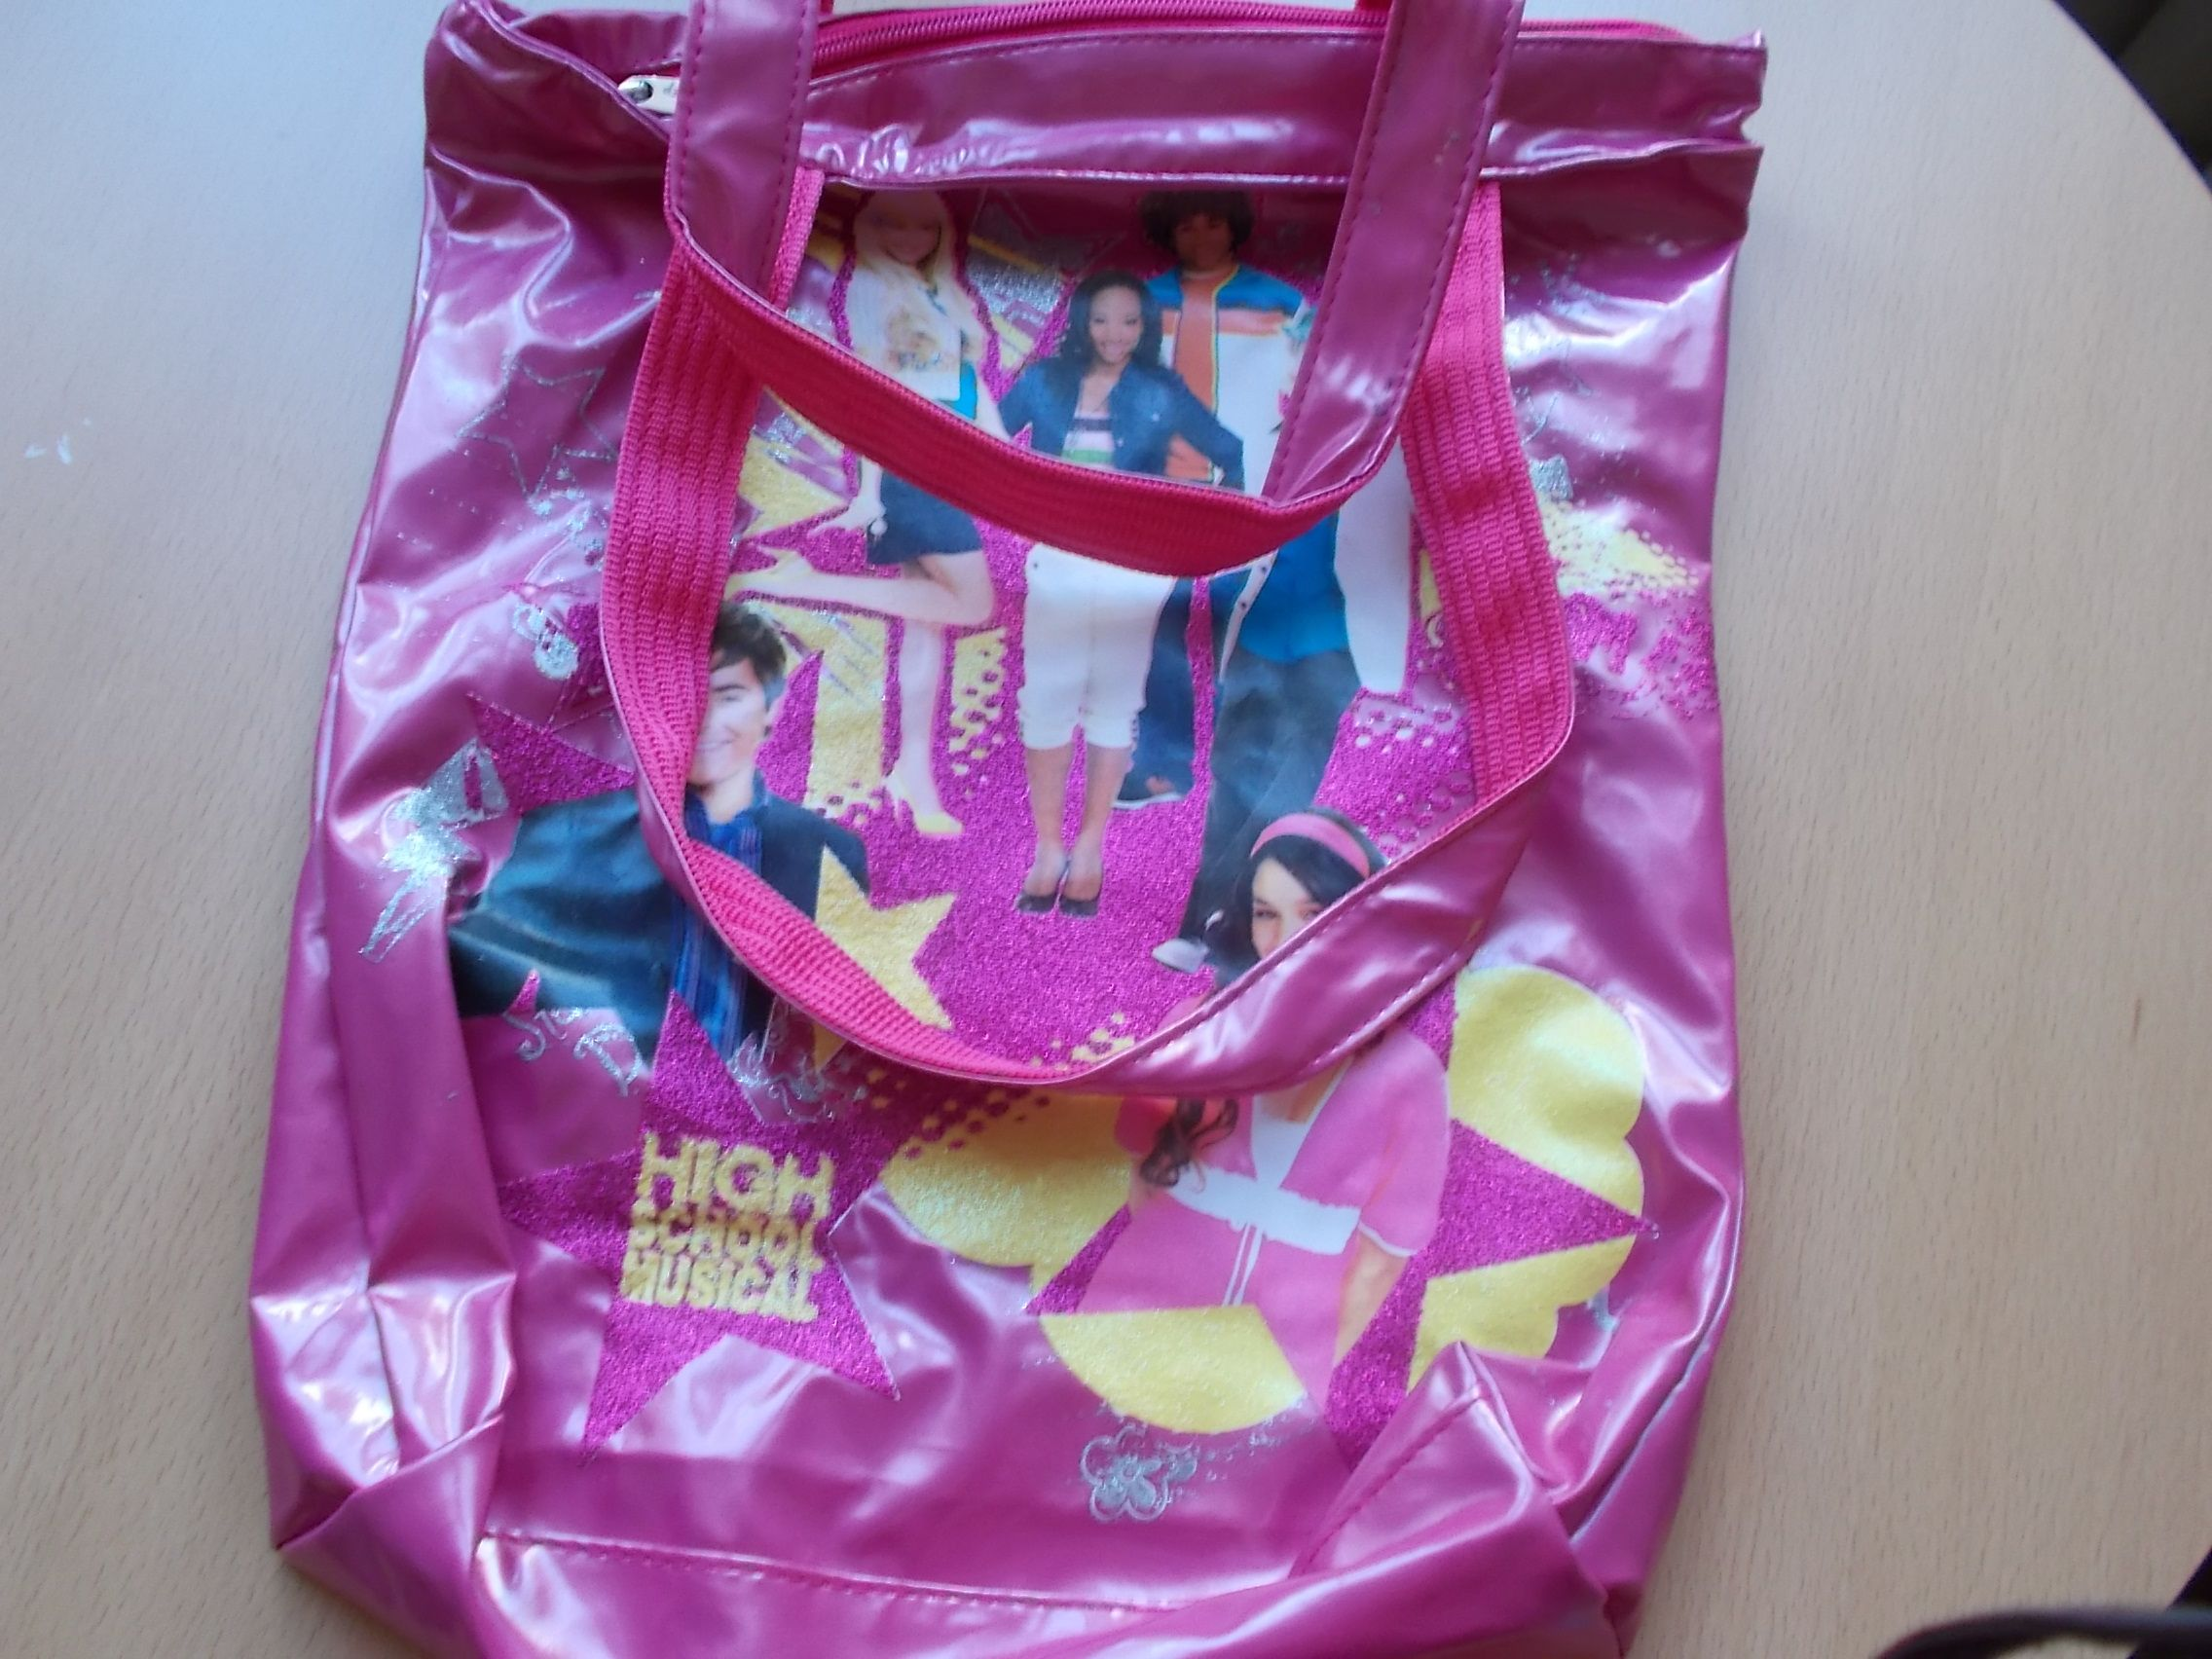 High School Musical bag for 5-9 or 10-14 year old girl. | OCC ...